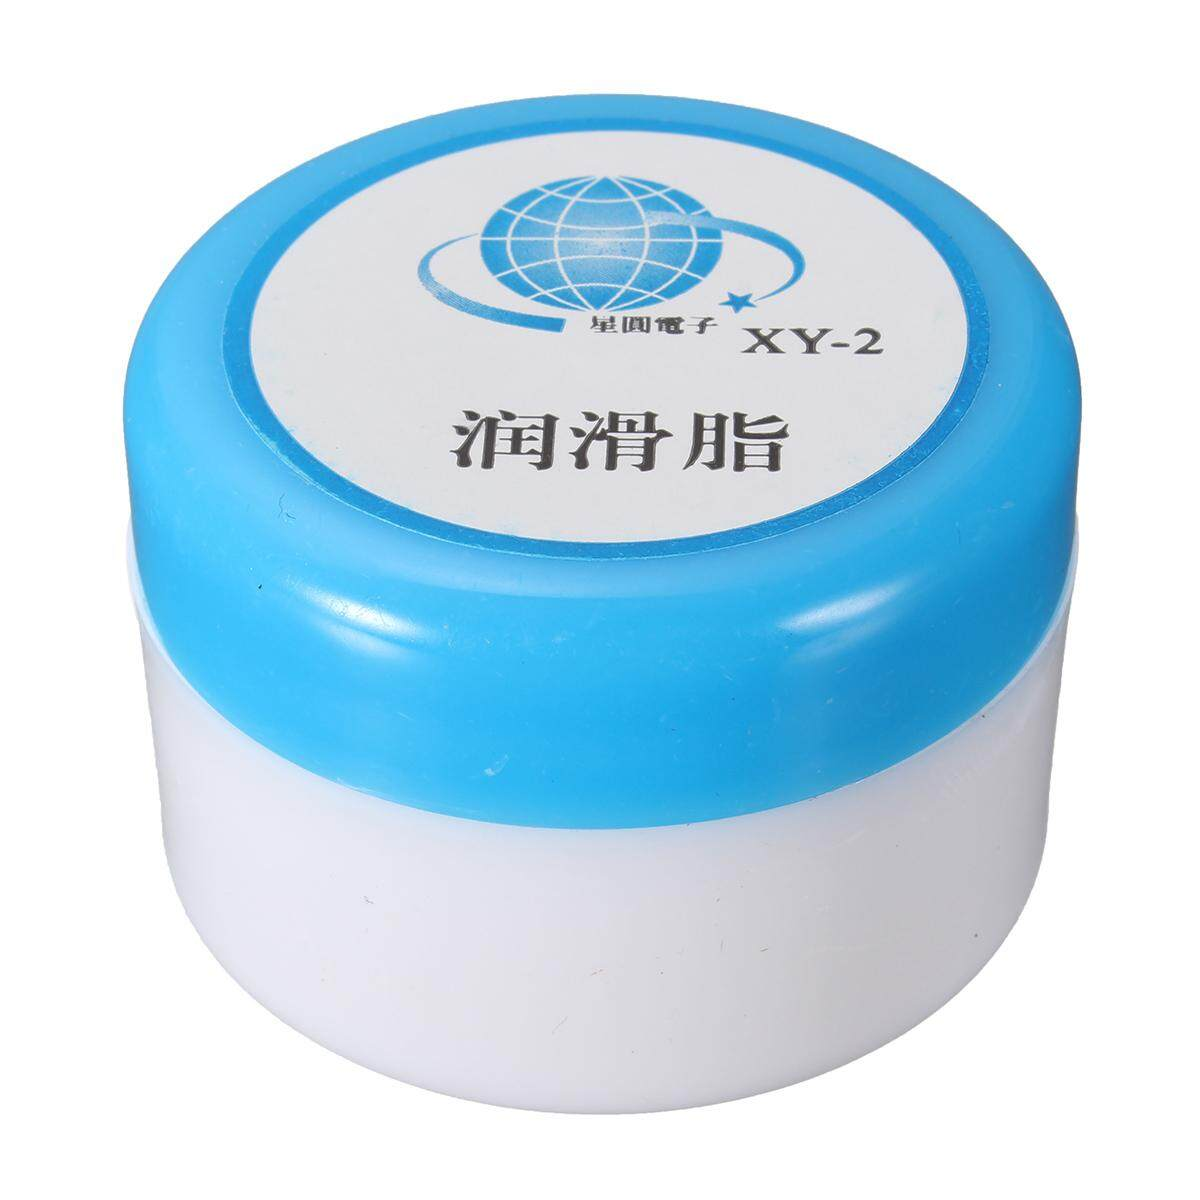 【Free Shipping + Flash Deal】 50g Silicone Grease for All Flashlight  Lubricating Grease XY-2 Oil for Solvent Printer Slider Guide Rail Torch